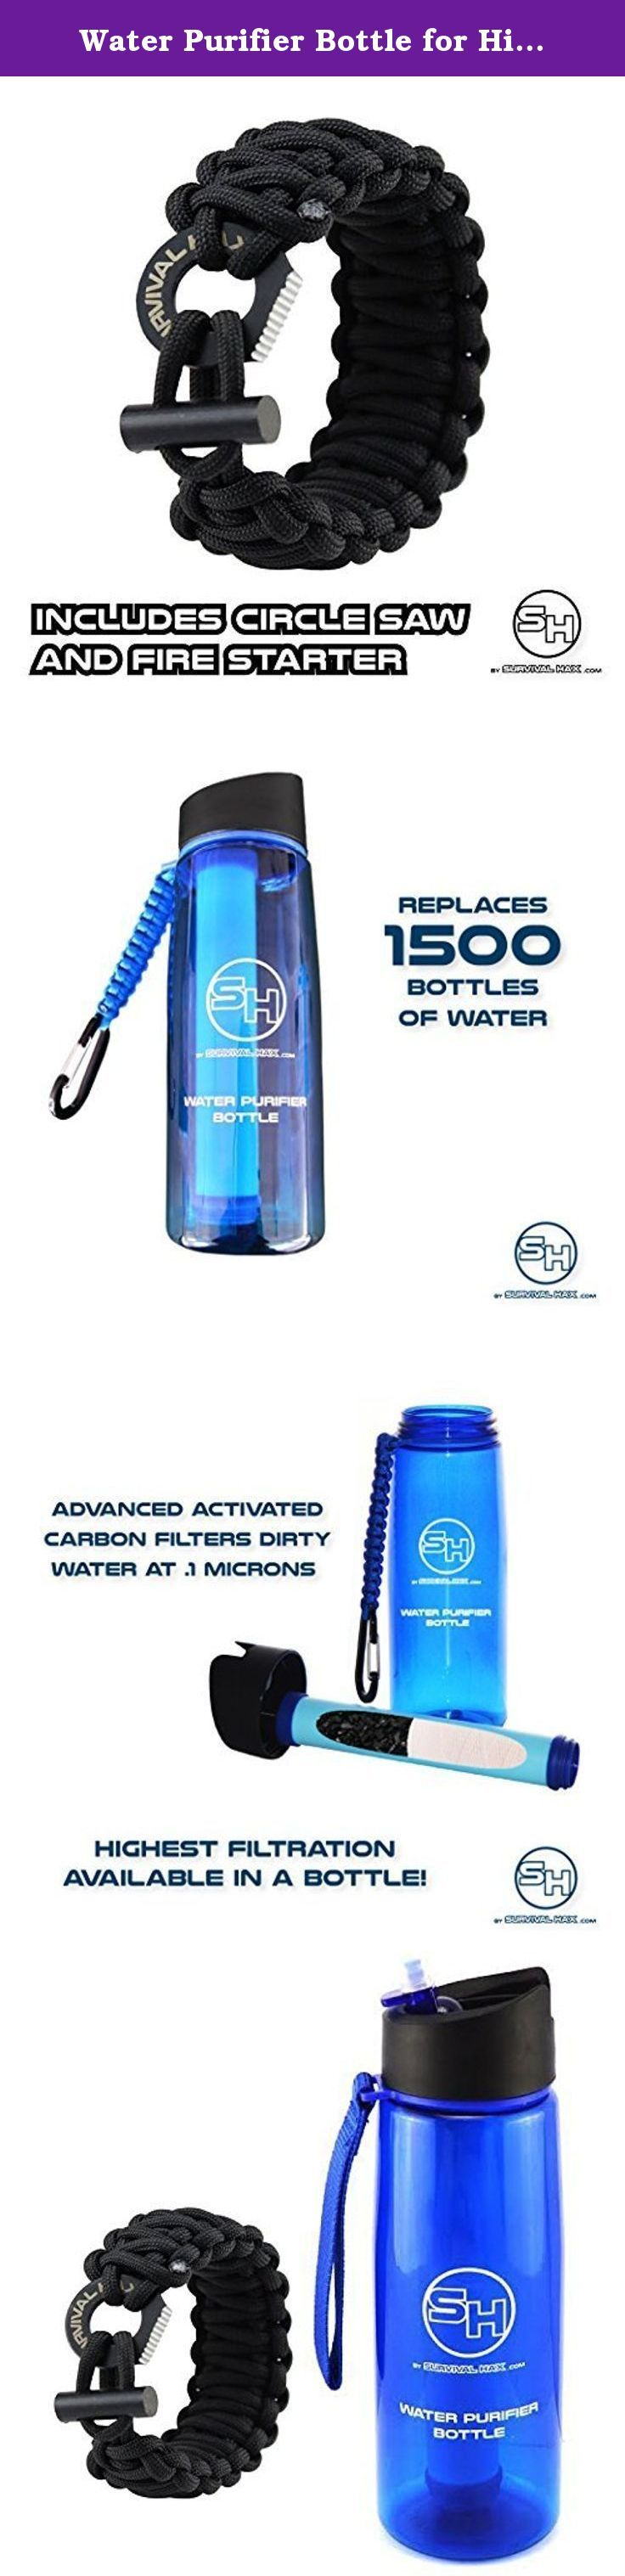 Water Purifier Bottle for Hiking, Survival, Camping, Backpacking - Paracord Travel Strap - Advanced Filter Straw - BPA Free. If you made it this far, you're looking for one thing. The best water bottle filter and purifier on Amazon. Congratulations, you found it. • Are you in to camping, hiking, and backpacking? • Are you traveling out of the country? • Are you looking for something that can filter regular tap water? • Are you researching equipment for your bug out bag, prepping, or...